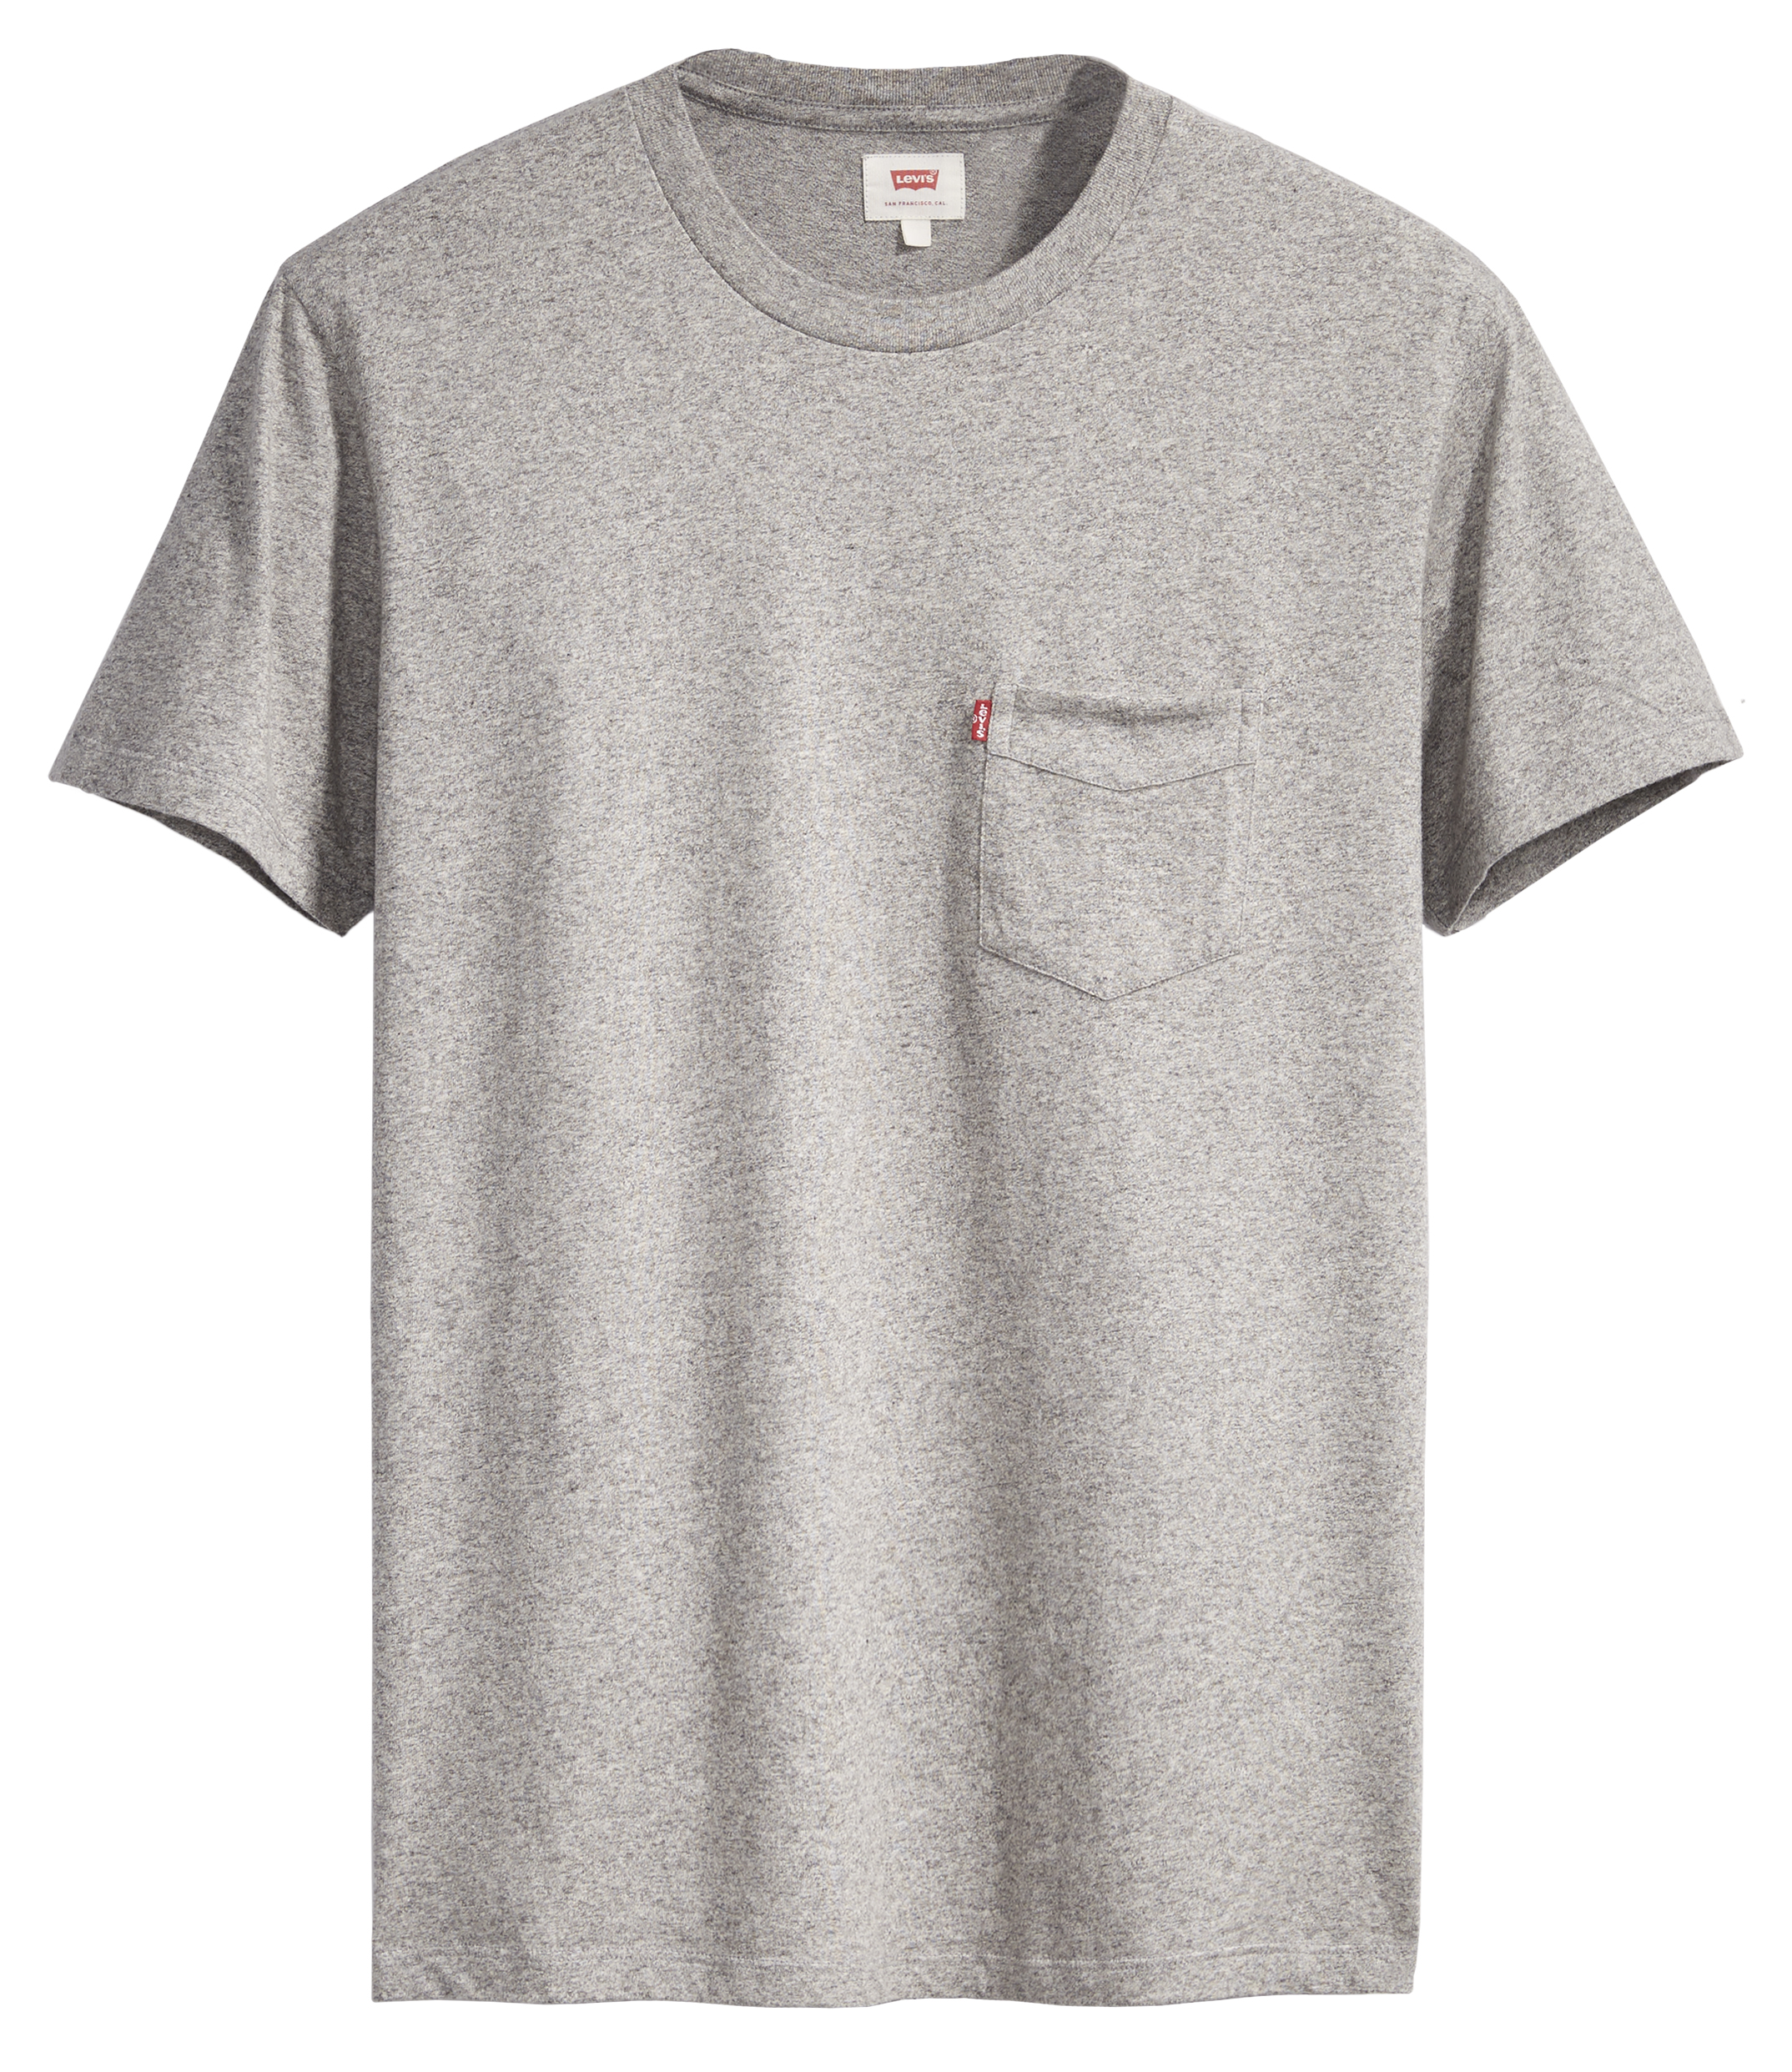 736f8957 Click on the Image to Enlarge. More Details. Levis Setin Sunset Pocket Tee  ...